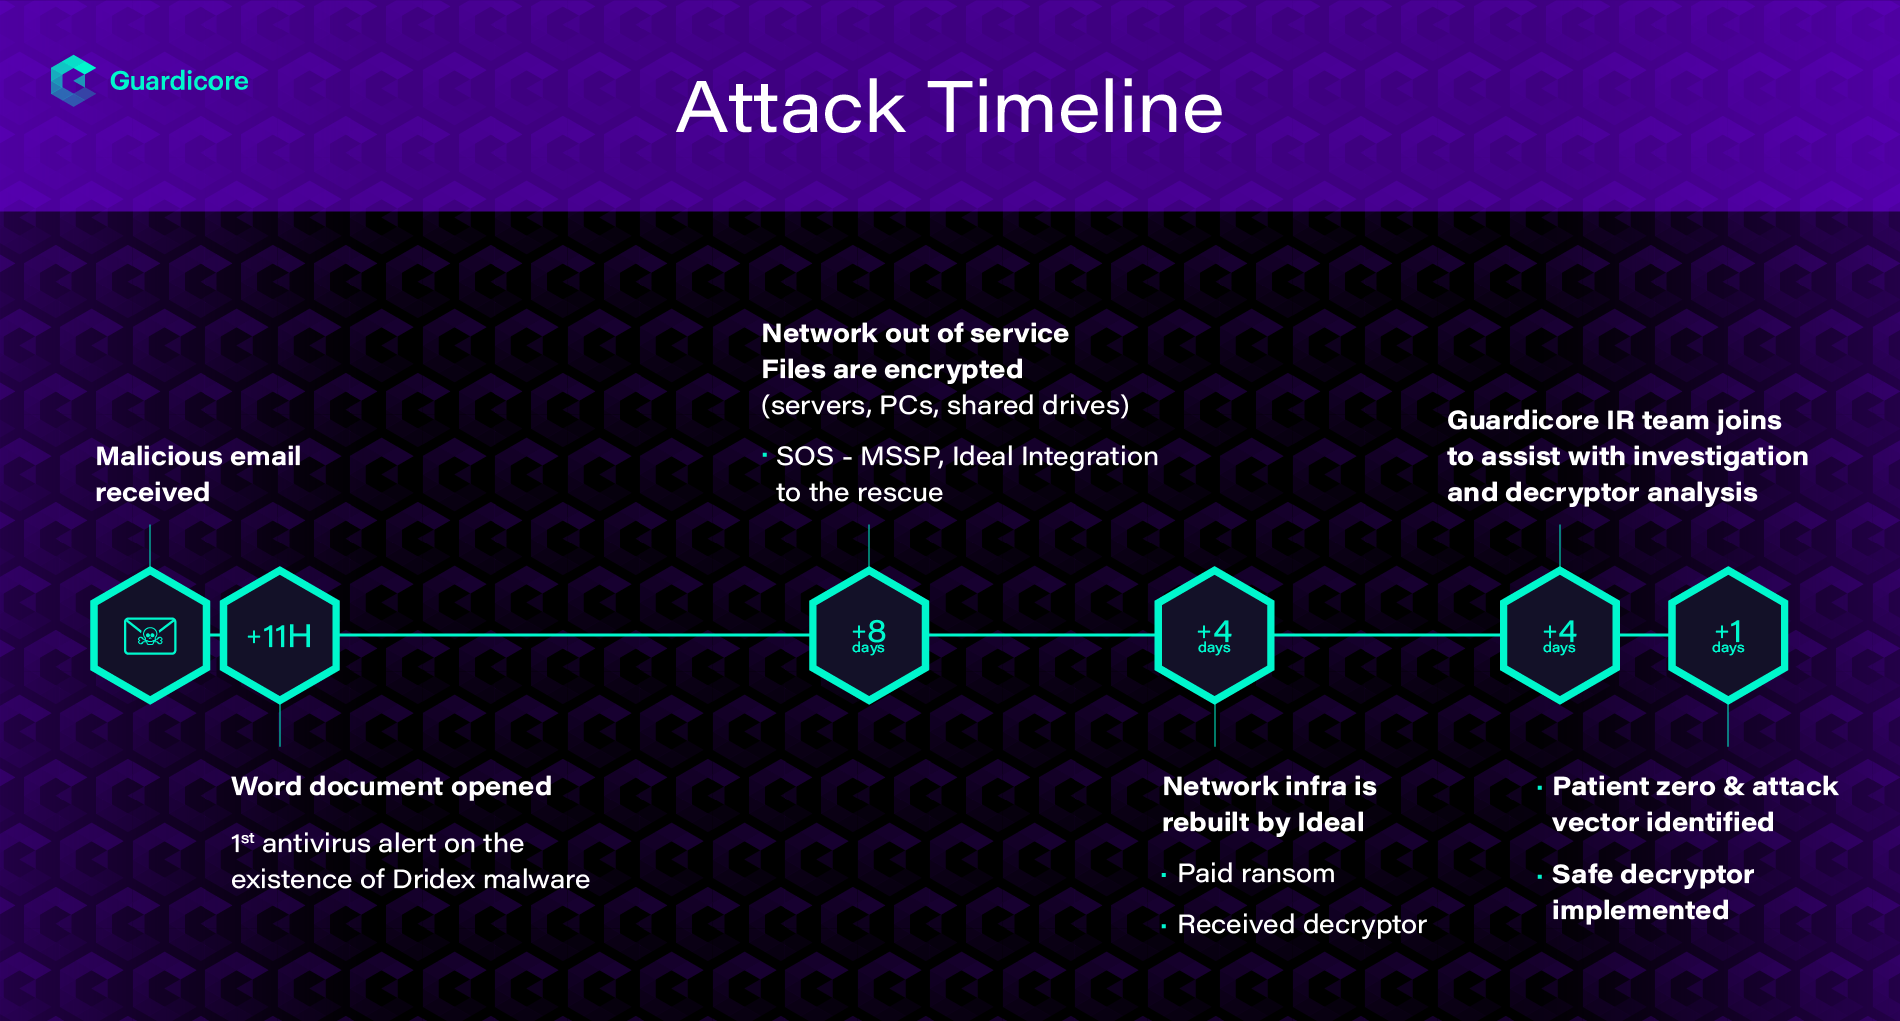 Timeline of the IEncrypt ransomware attack. Describing how hundreds of Windows stations were encrypted within eight days of opening the infected email and the steps taken to restore the network, receiving the decryptor and analyzing it and conclude the investigation